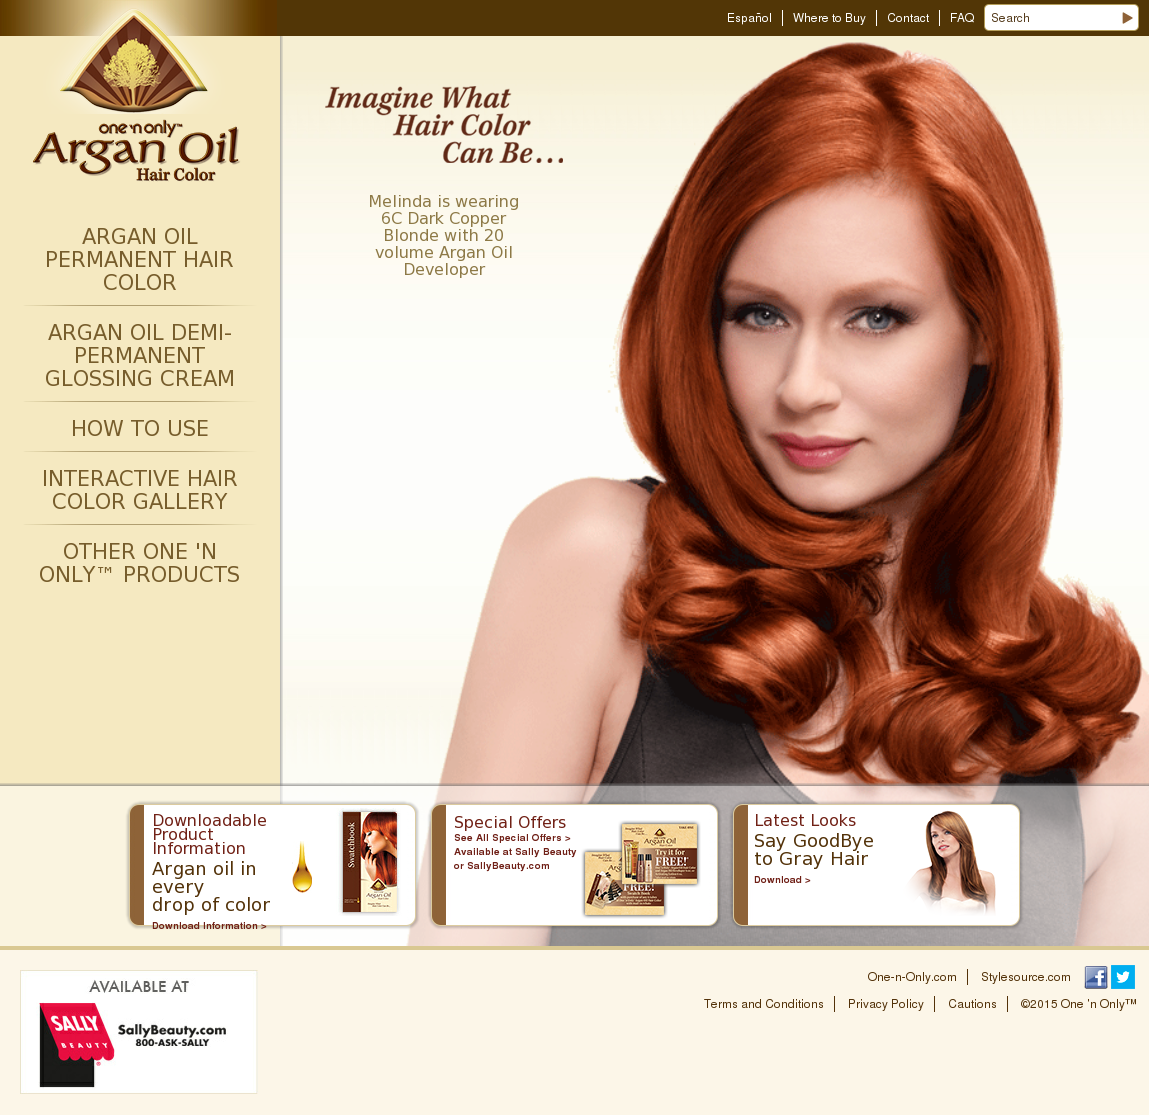 One N Only Argan Oil Hair Color Competitors Revenue And Employees